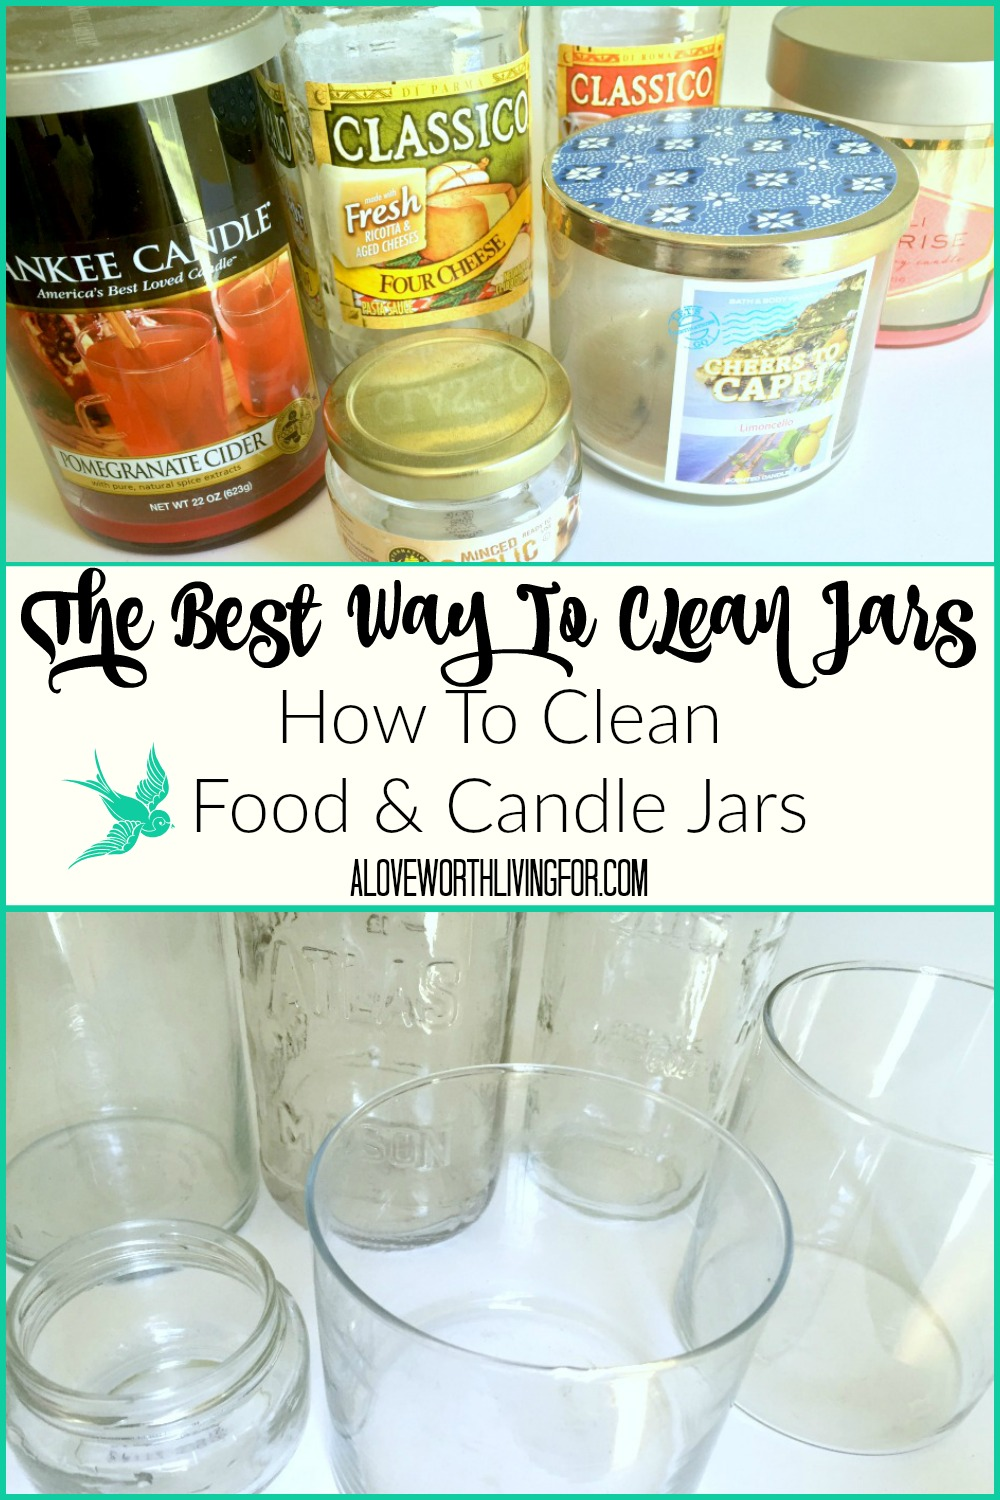 The Best Way To Clean Jars - How To Clean Candles & Food Jars: How to get the wax out of old candles & How to get the label and glue off of old pasta jars by A Love Worth Living For